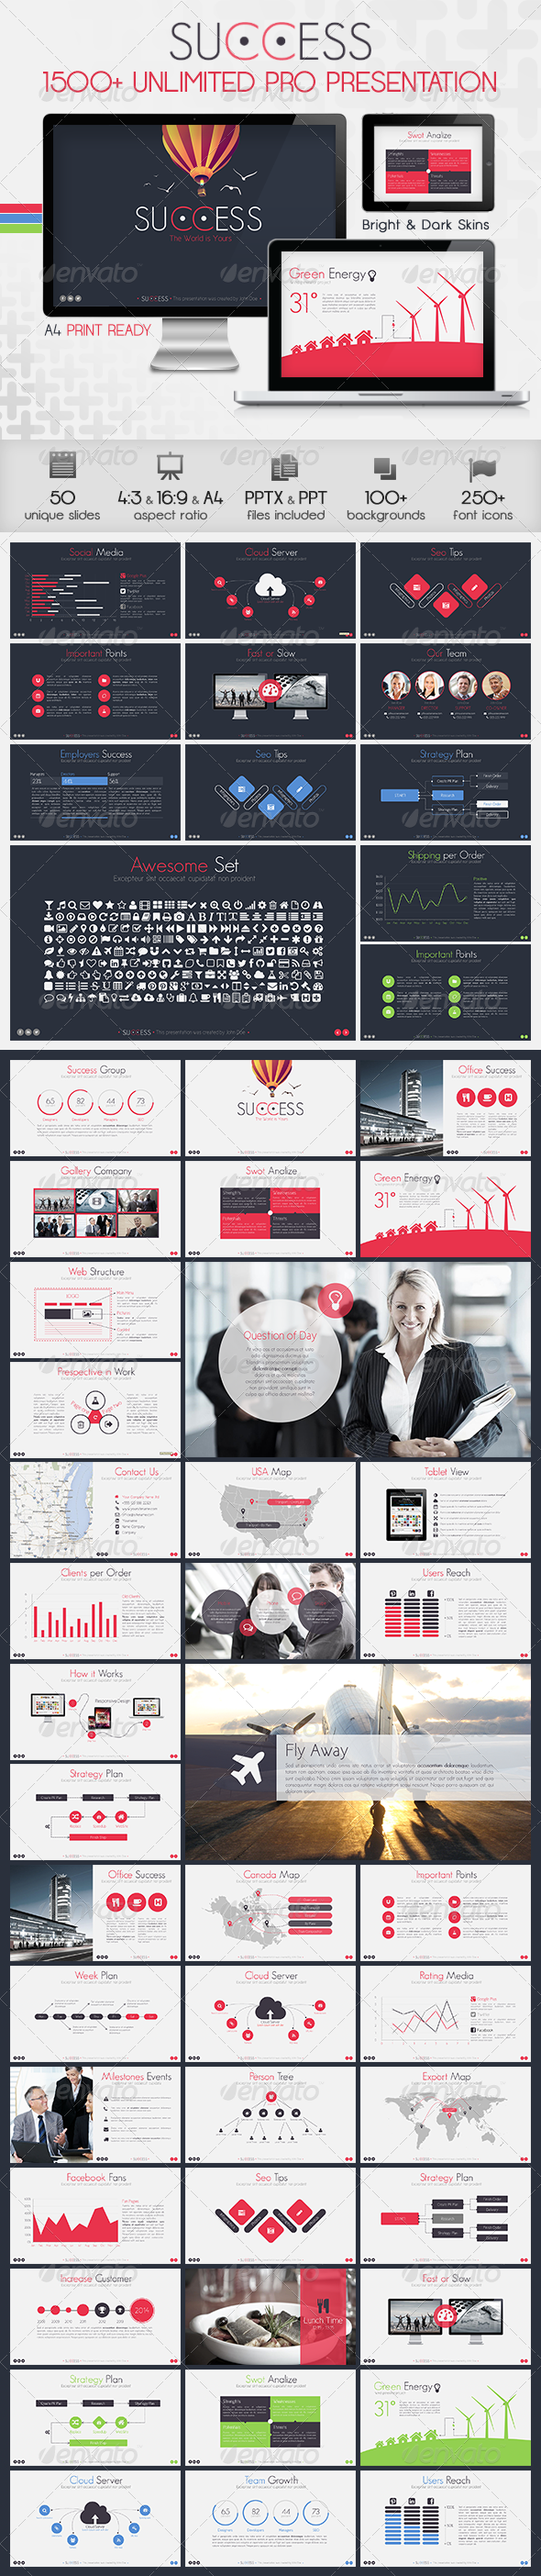 Success Powerpoint Presentation Template - Business PowerPoint Templates